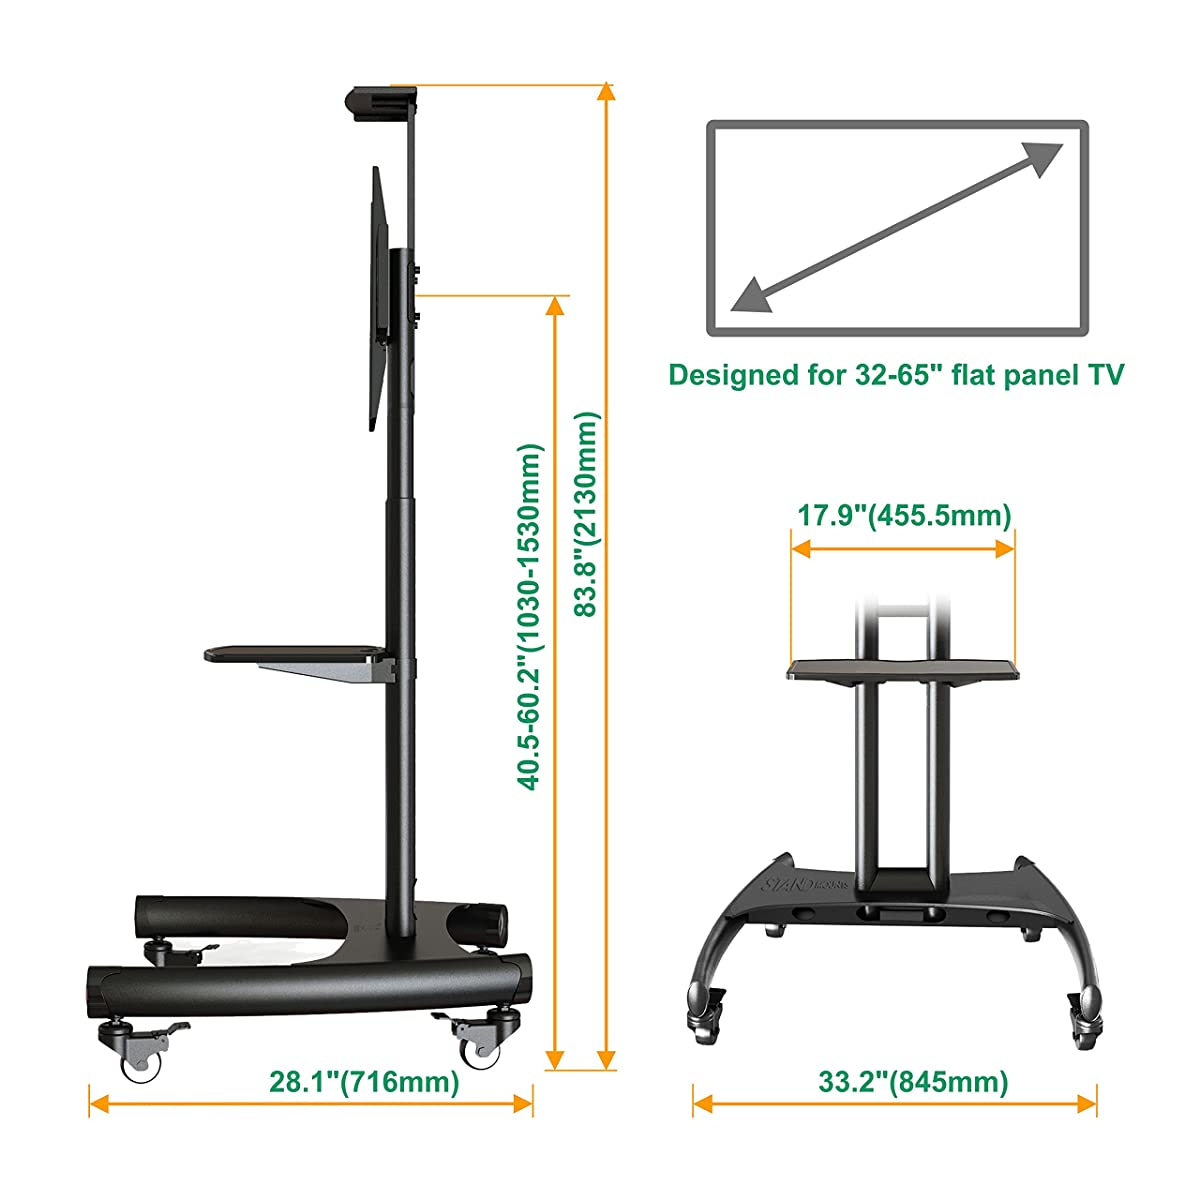 North Bayou Universal Mobile TV Cart TV Stand with Mount for LED LCD Plasma Flat Panel Screens and Displays 32 to 65 inch up to 100 lbs AVA1500-60-1P Black with 1 middle AV Shelf and 1 top Shelf